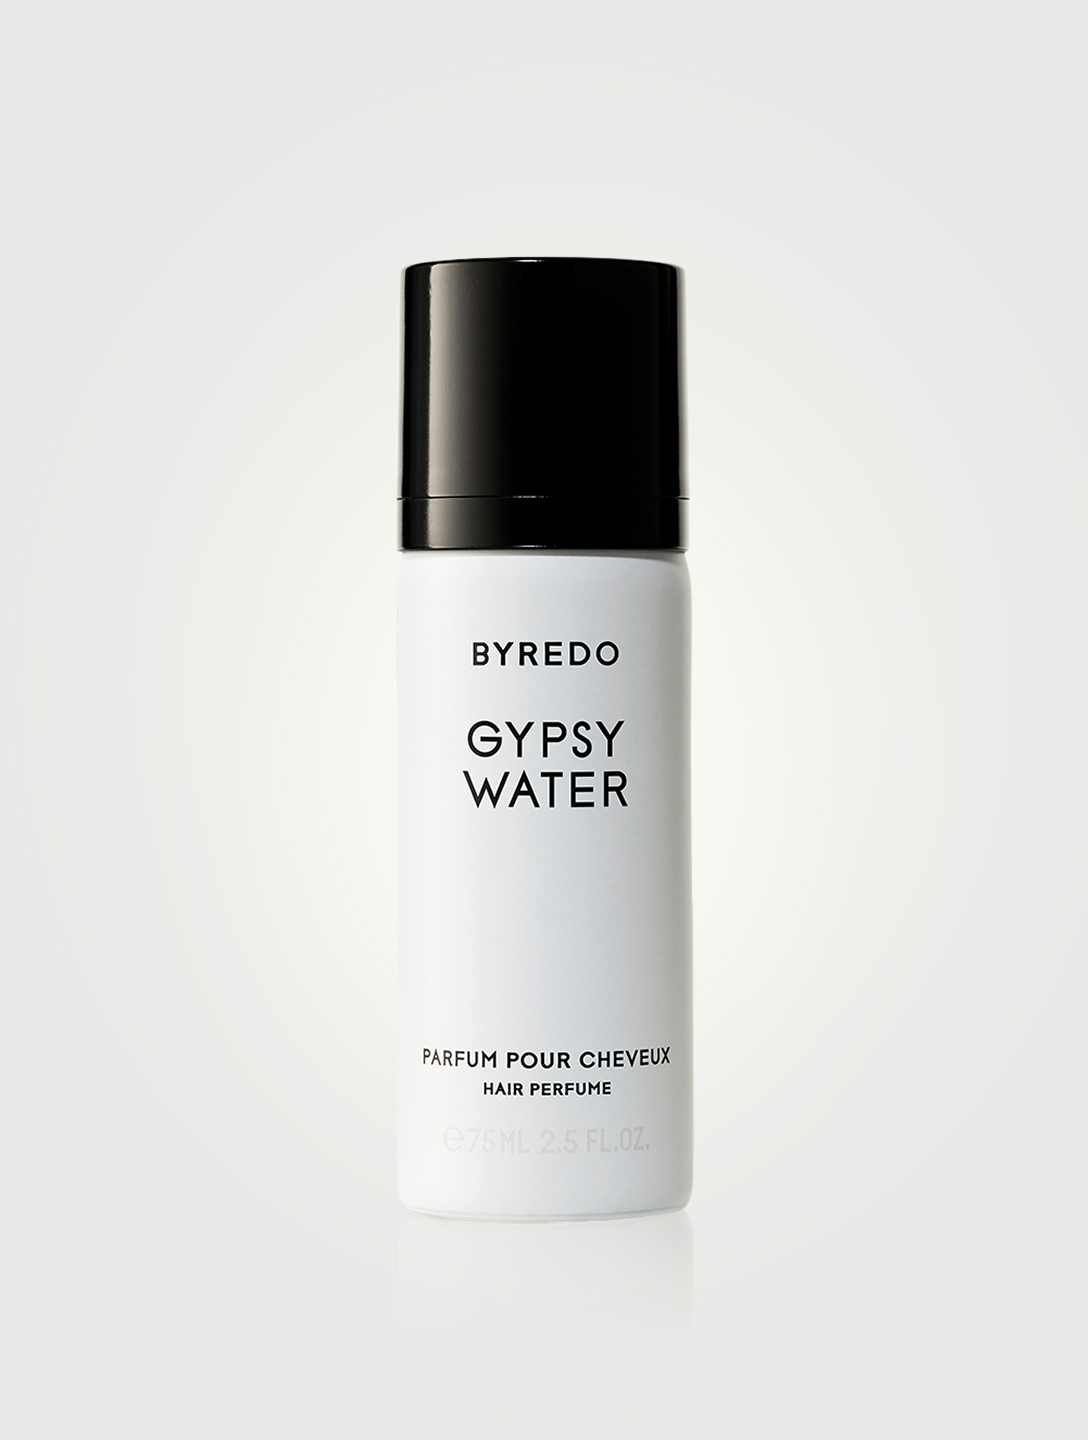 BYREDO Gypsy Water Hair Perfume Beauty